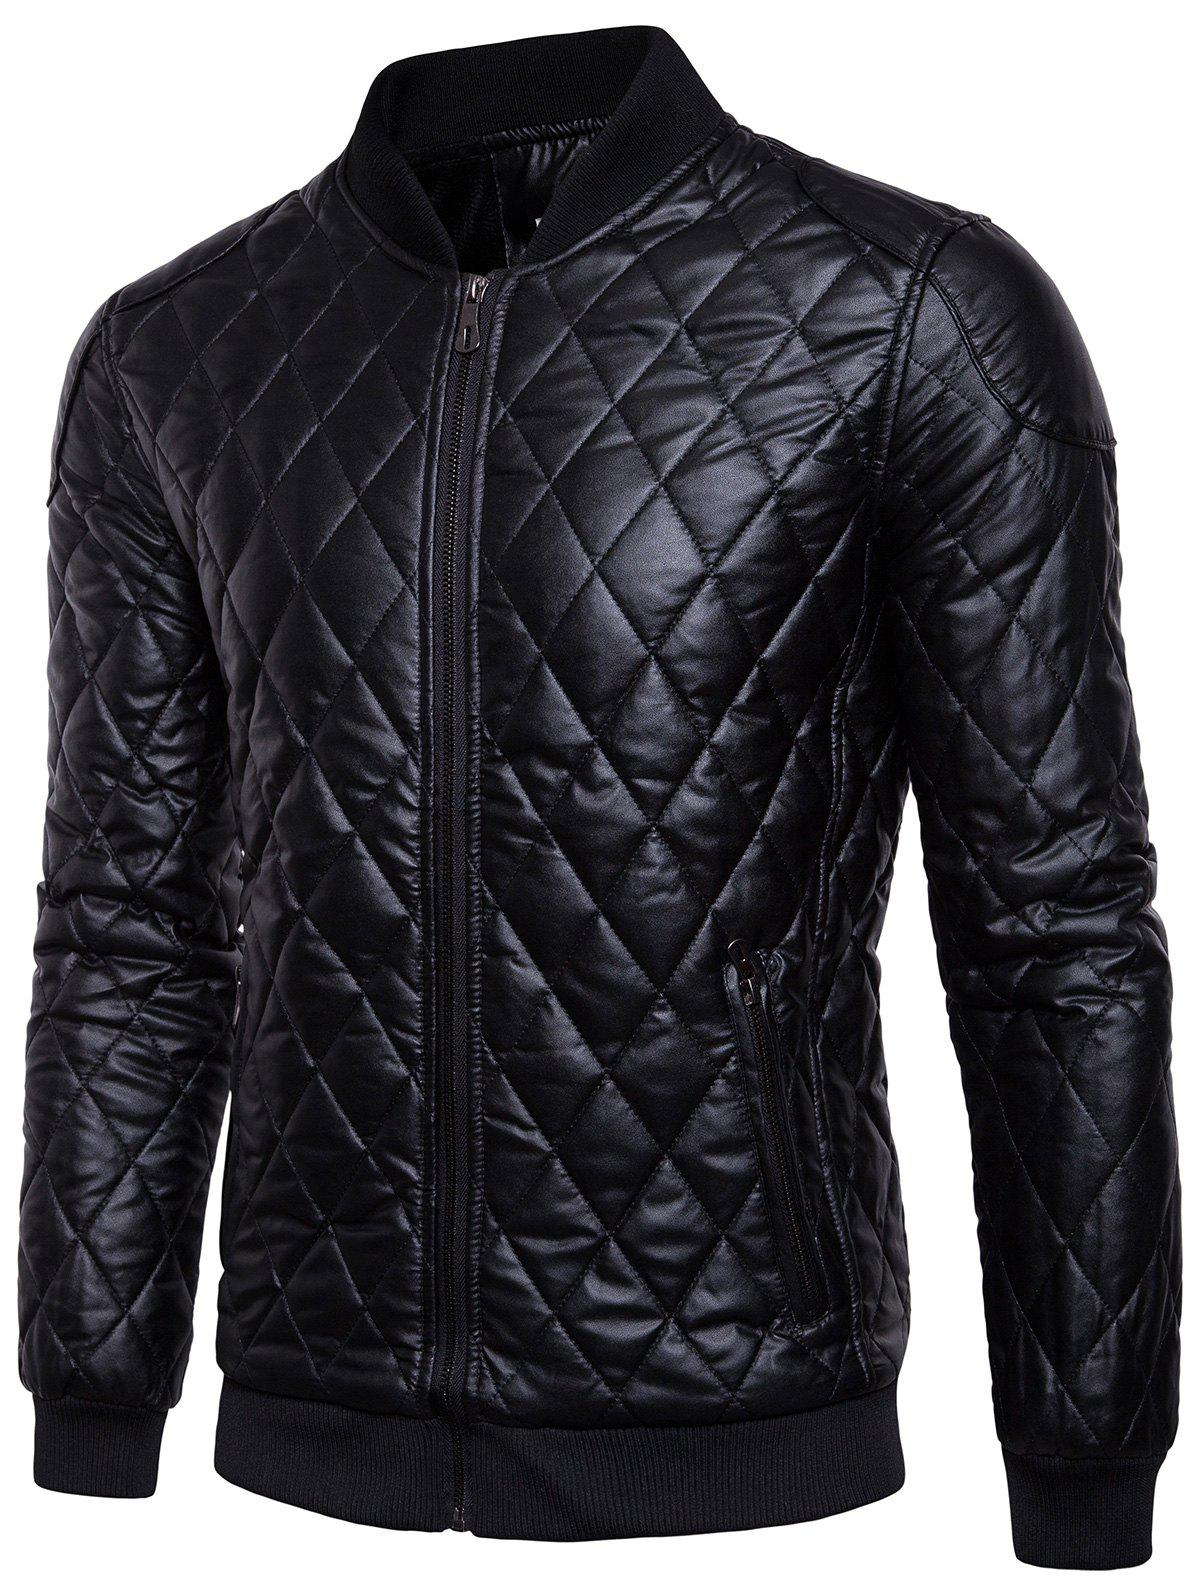 unbeatable price shop for authentic exceptional range of styles Fleece-lined Warm Argyle Faux Leather Jacket